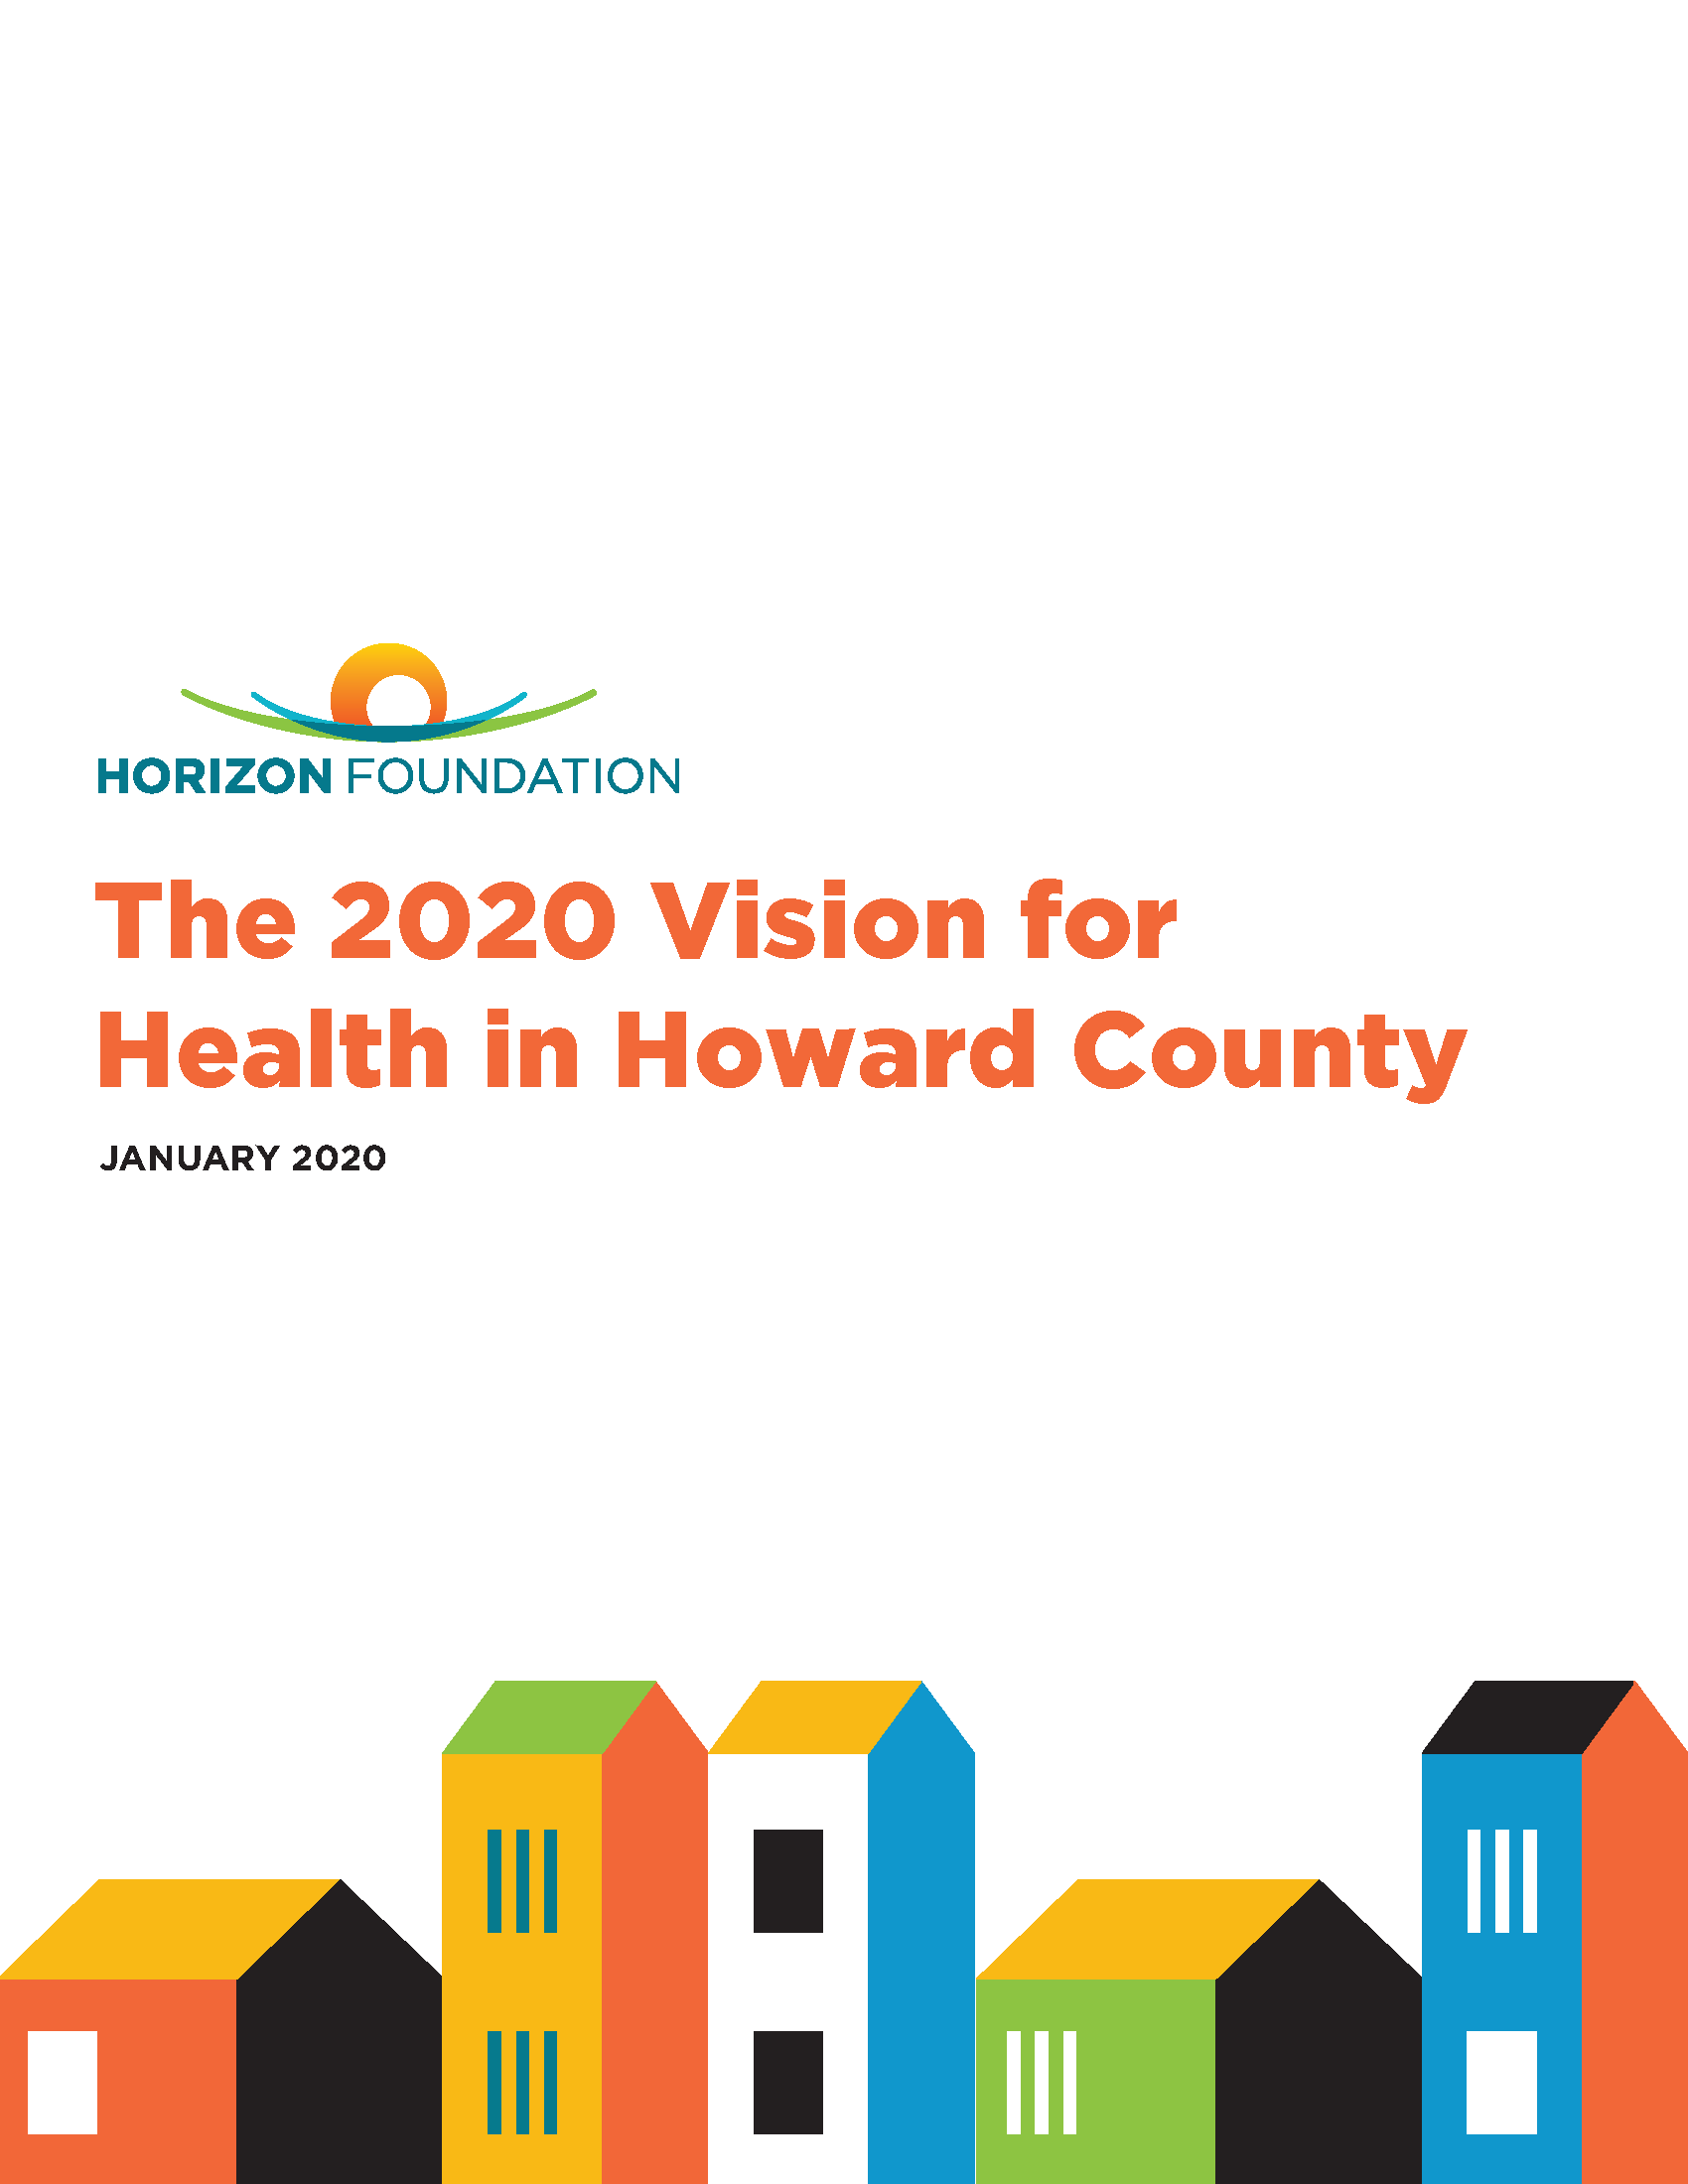 2020 Vision for Health Horizon Foundation Report FINAL2 pages 002 Page 01